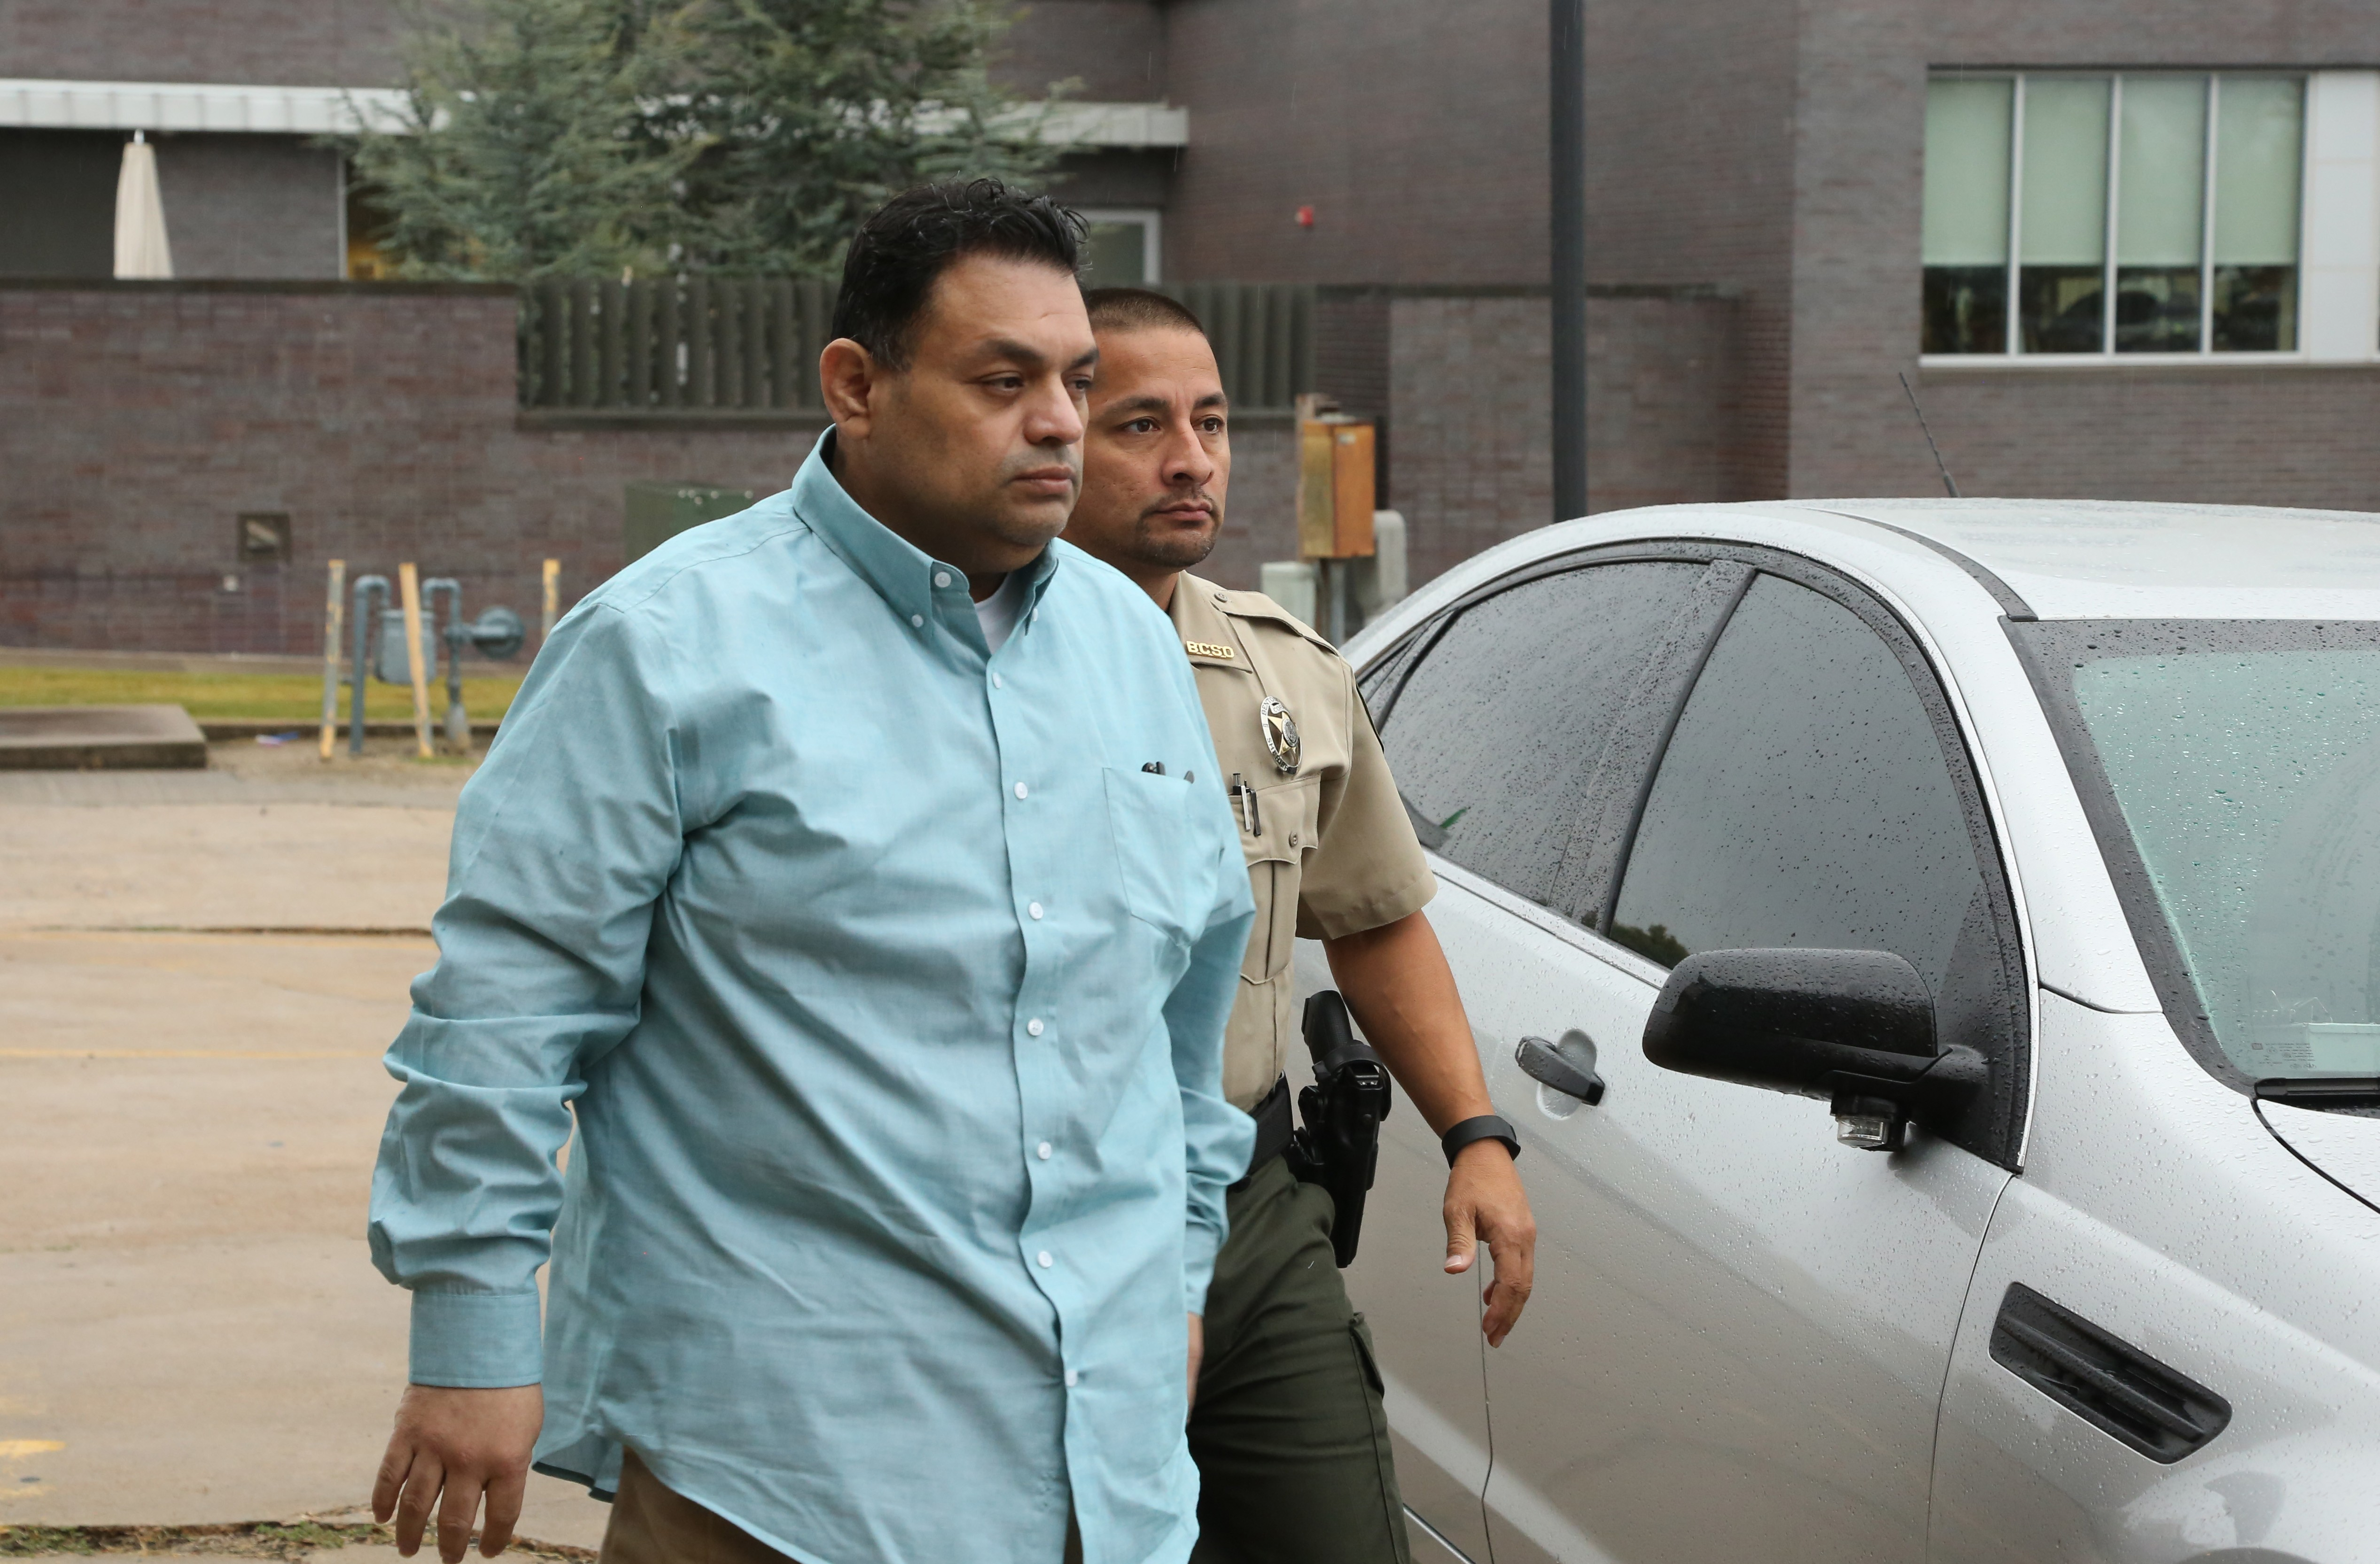 Mauricio Torres arriving at the Benton County courthouse in 2016.